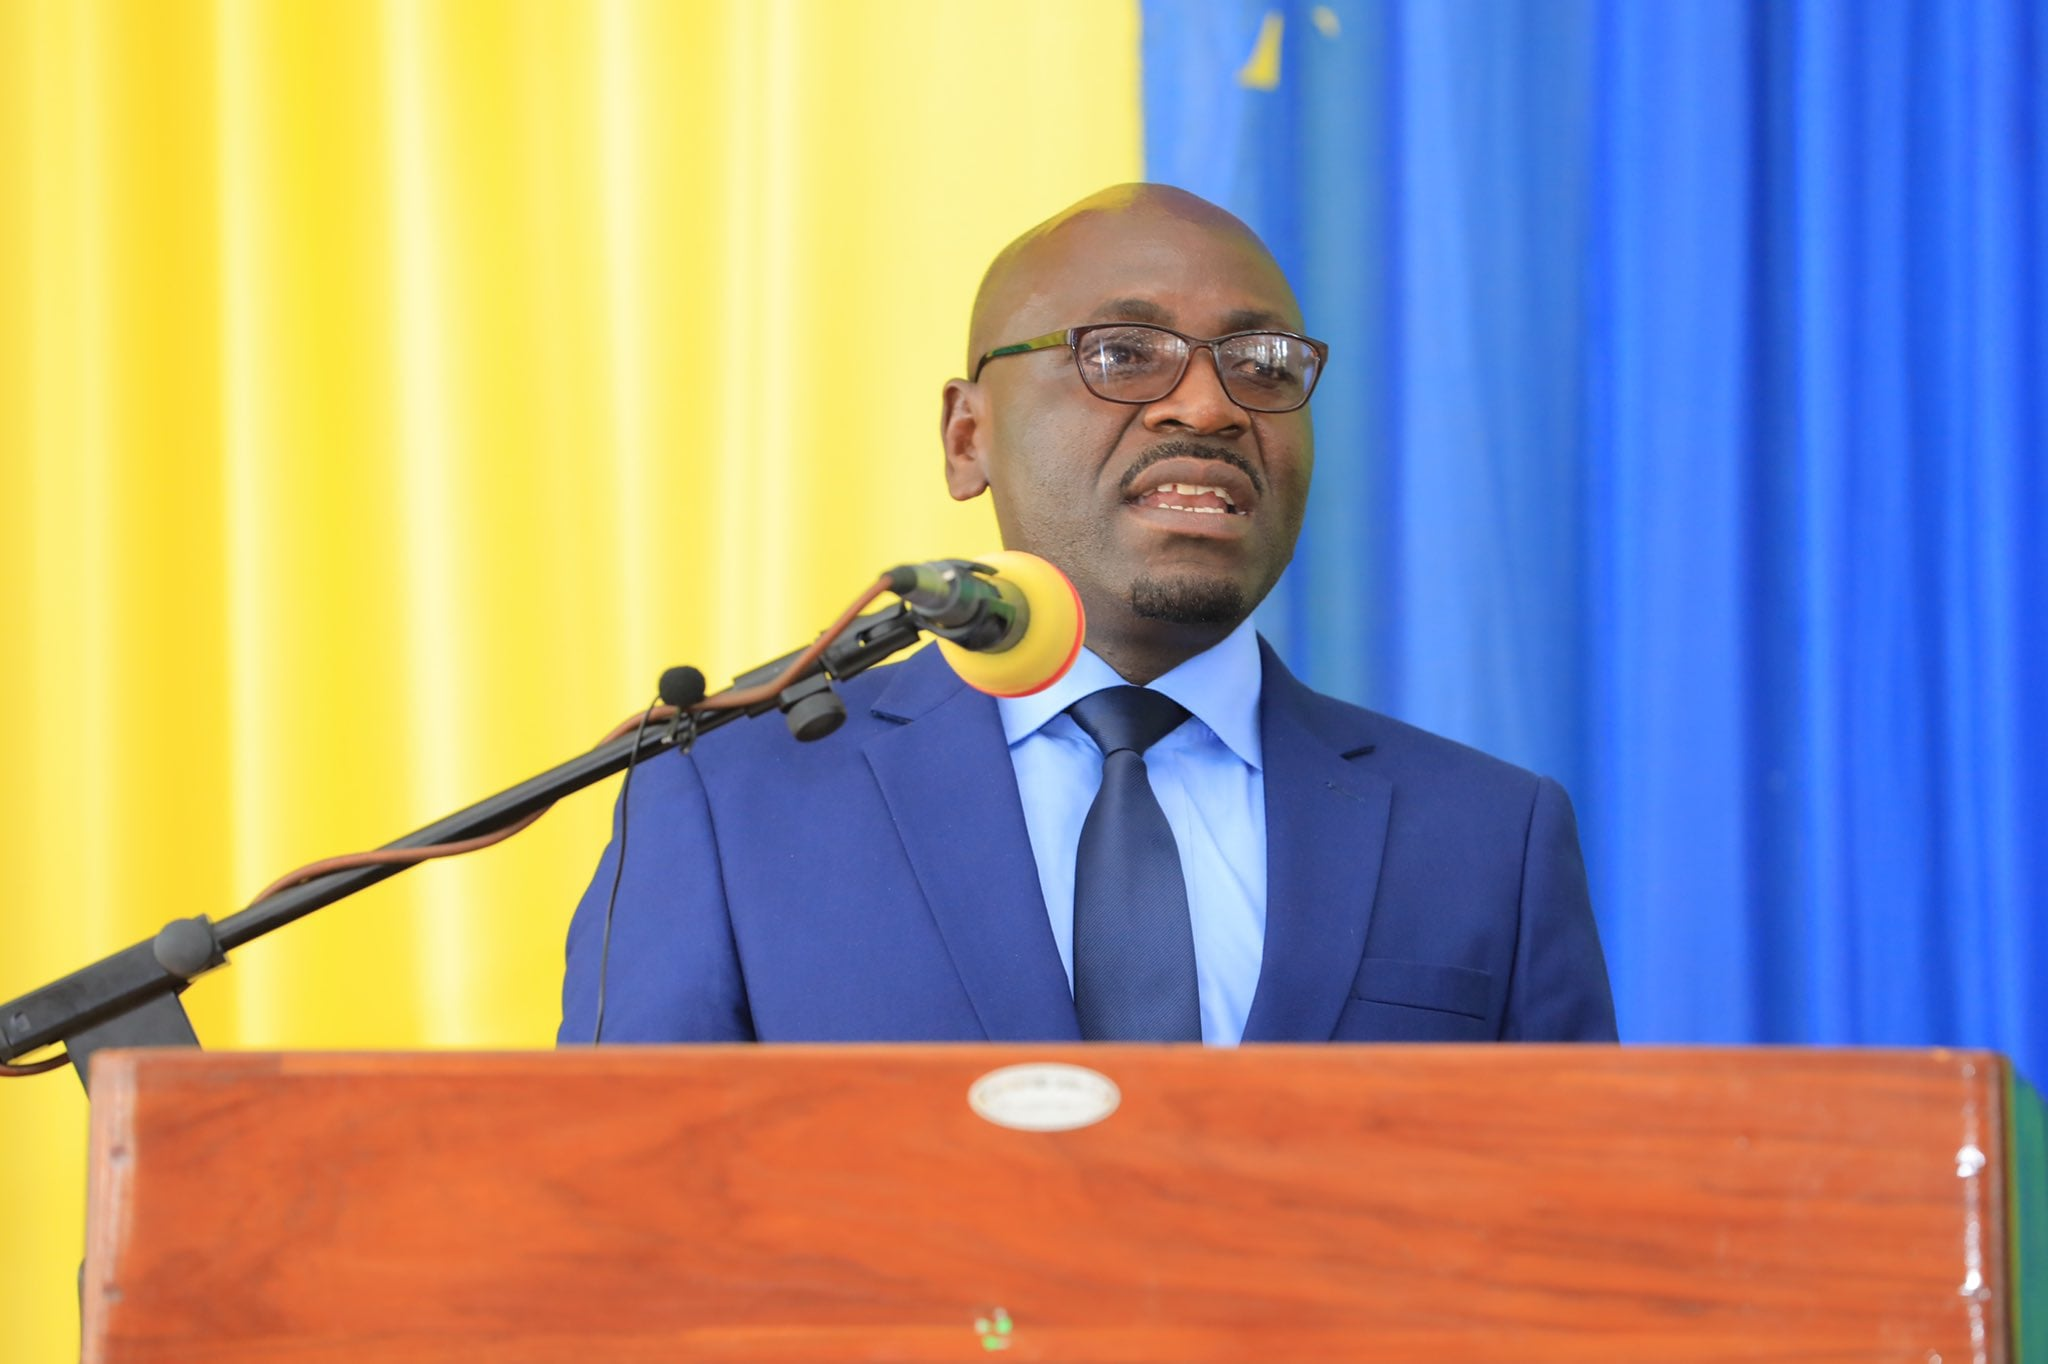 Deputy Minister gives update on formation of Consumers' advocacy council